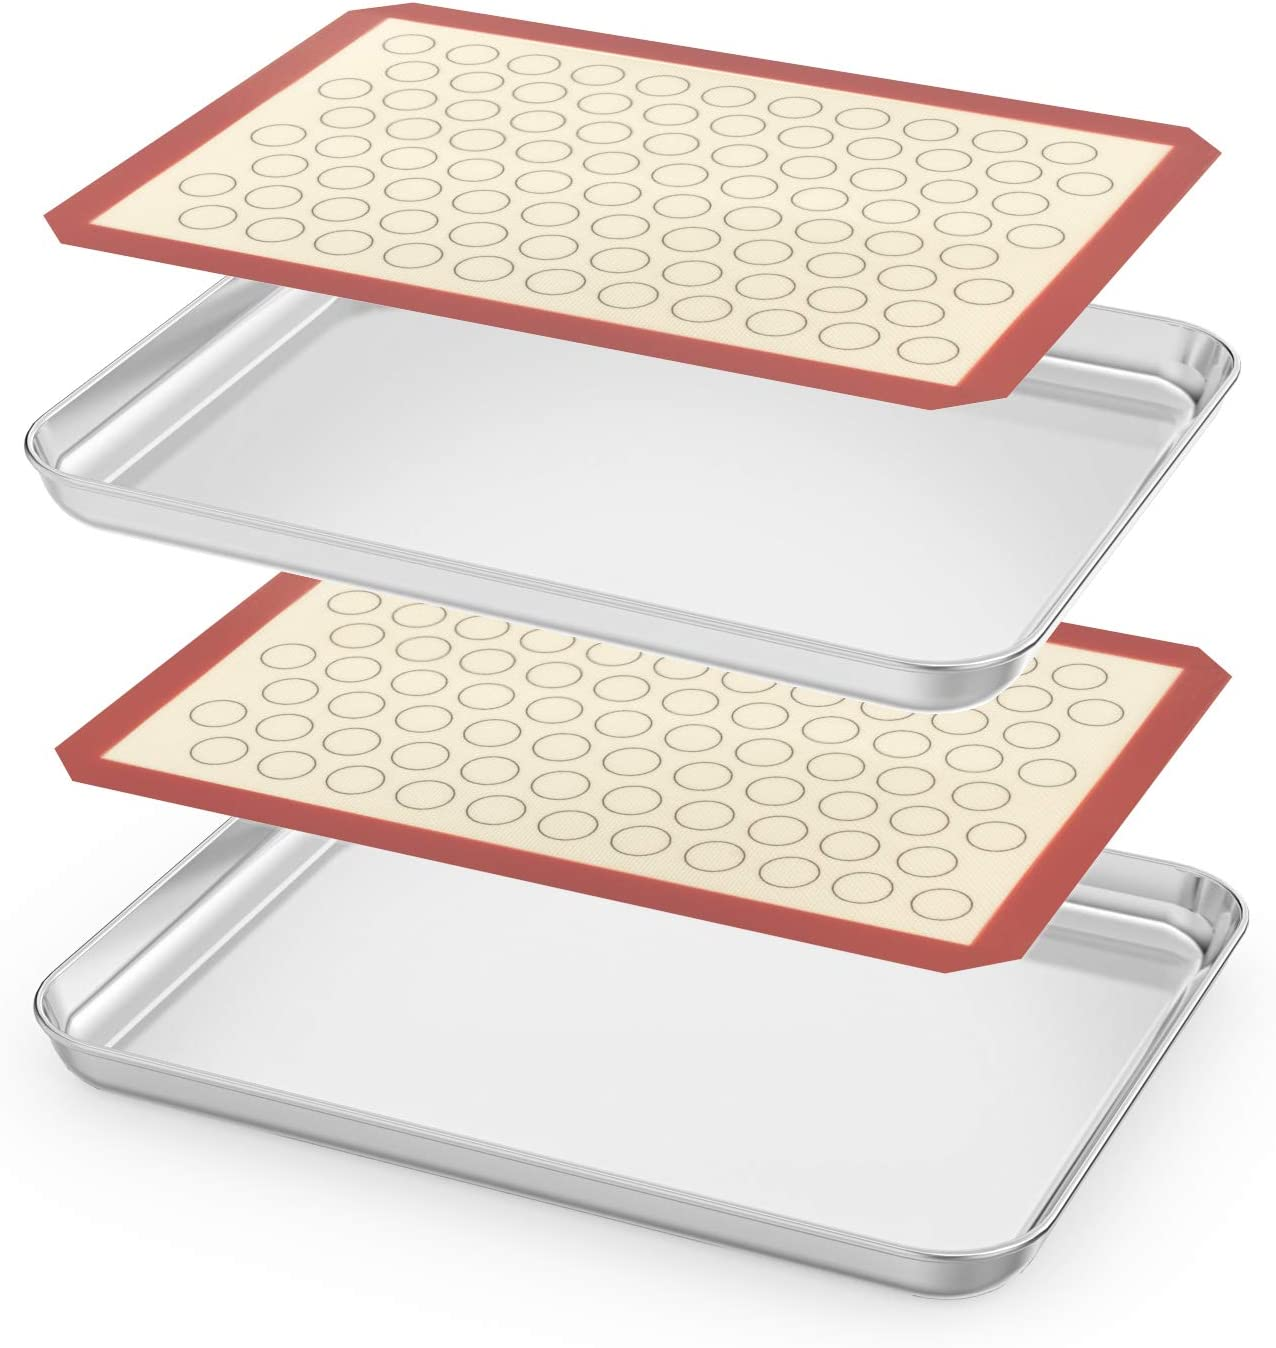 Baking Sheet with Silicone Mats - Estmoon 10 Inch Pure Stainless Steel Cookie Pan Tray Cooling Mat, Non Toxic & Healthy, Mirror Finish & Rust Free, Easy Clean (2 Sheets + 2 Mats)